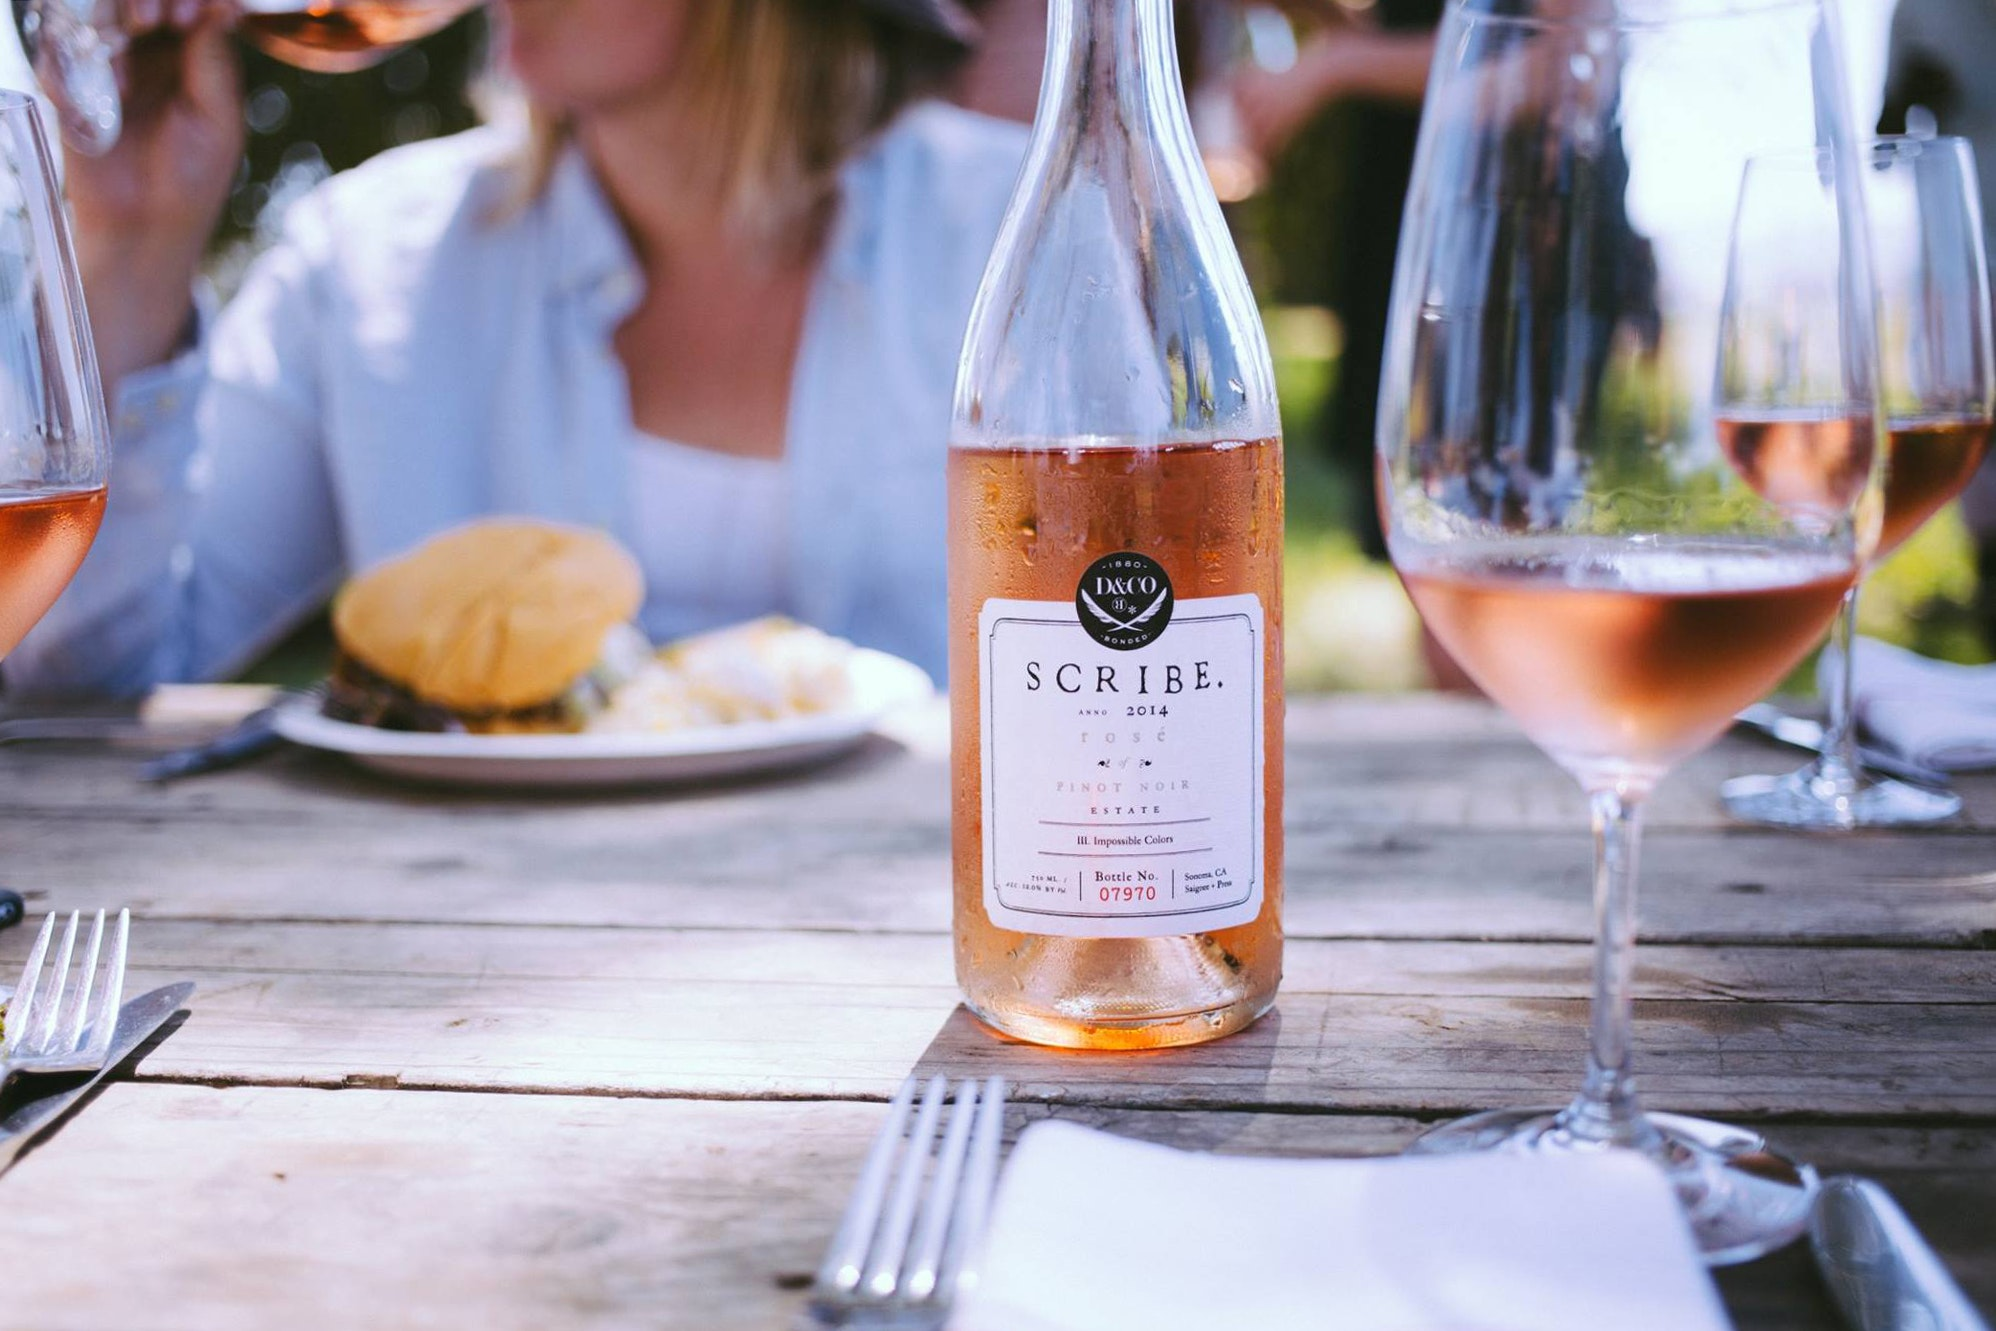 Find Scribe's 2016 Rosé of Pinot Noir (2014 pictured here) in Sonoma, CA.